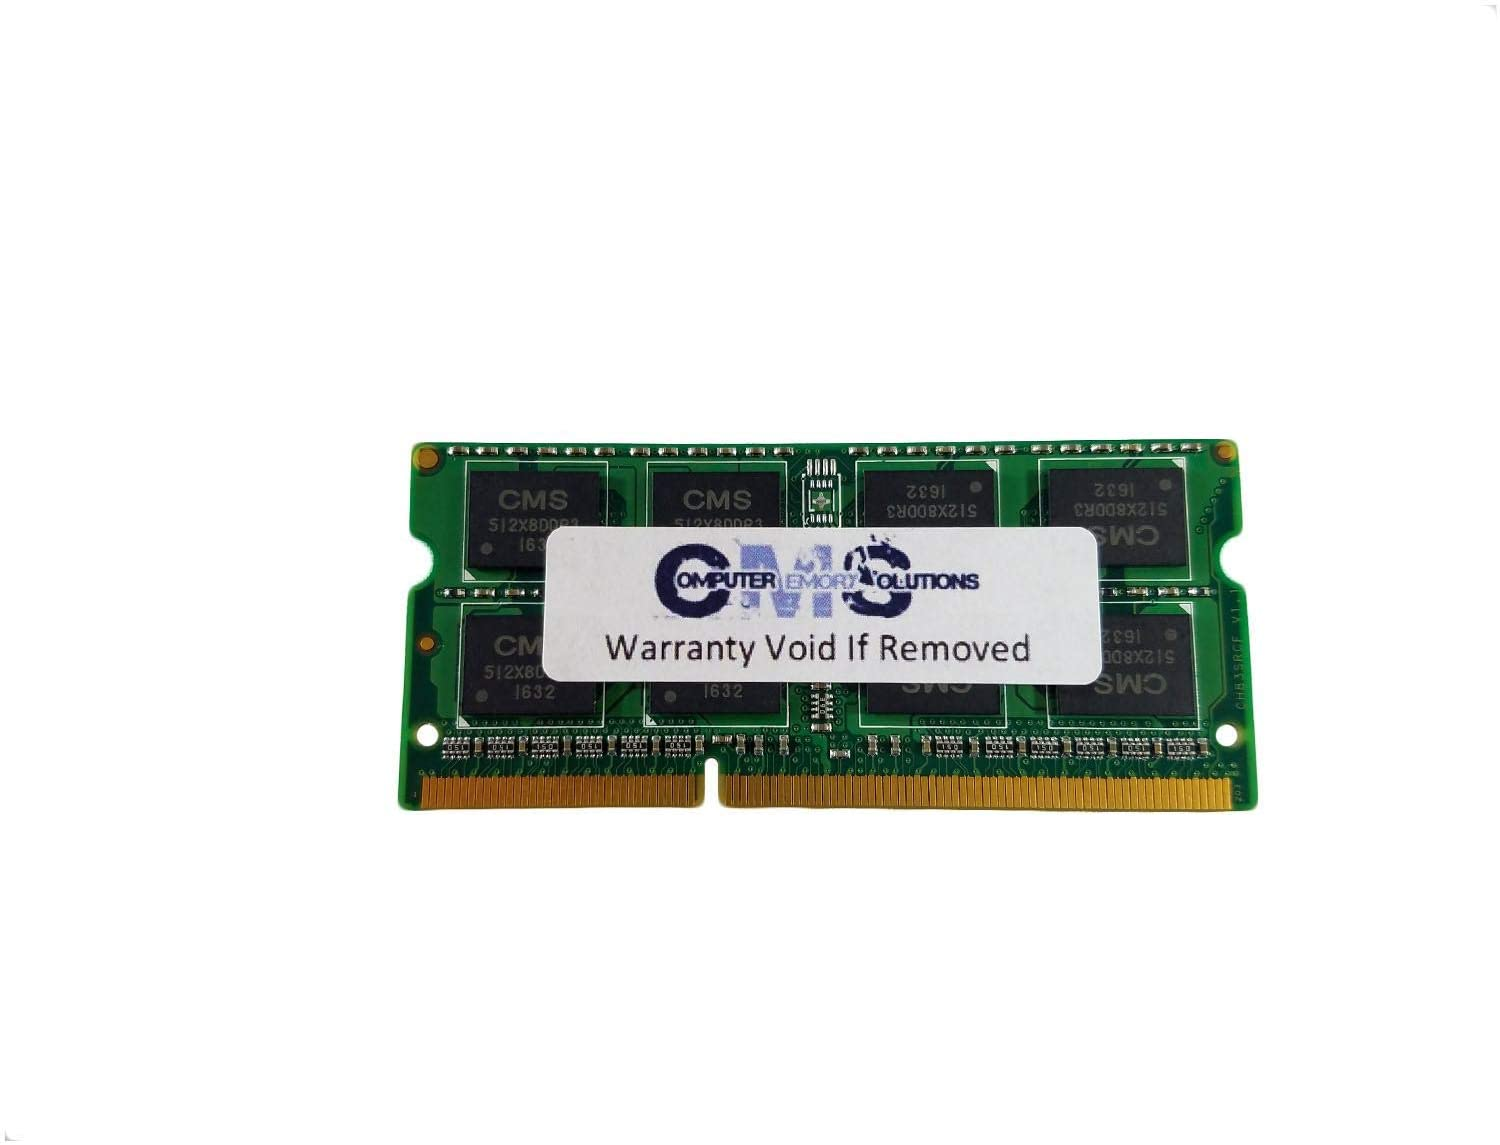 4Gb (1X4Gb) Sodimm Ram Memory Compatible with Lenovo Essential G580 Notebook Series Ddr3 by CMS A30